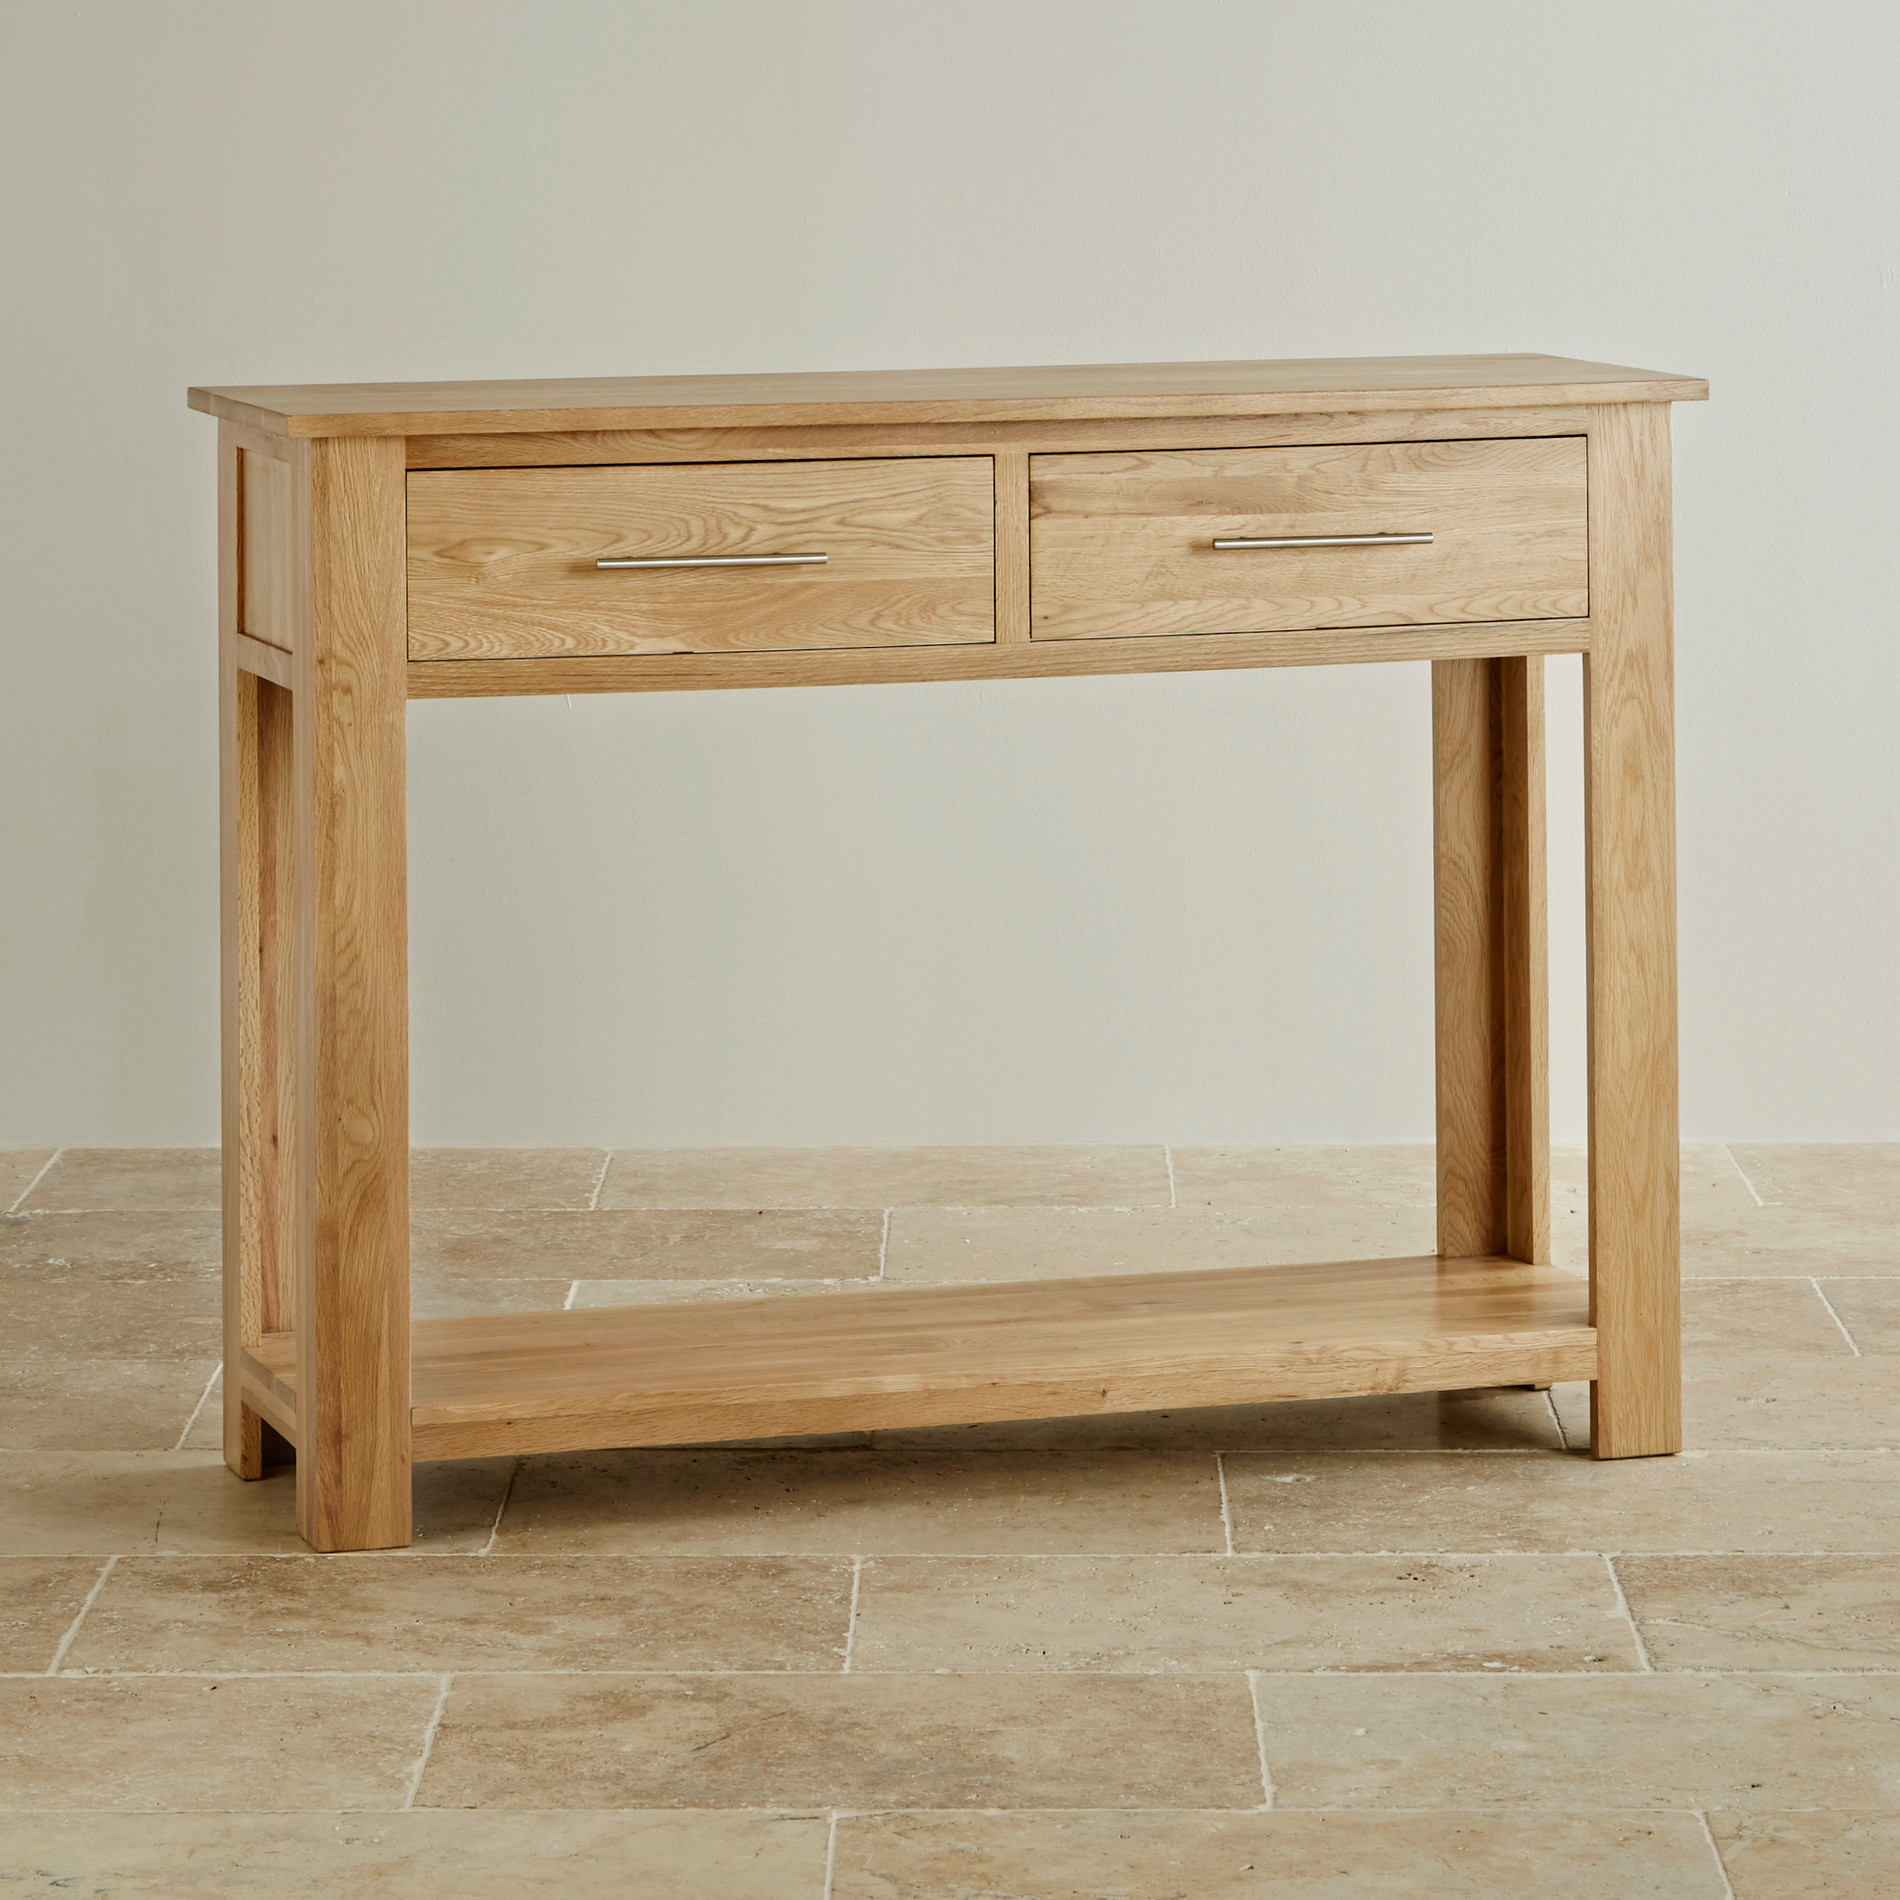 Console tables hallway tables youll love oak furniture land express delivery rivermead natural solid oak console table geotapseo Gallery